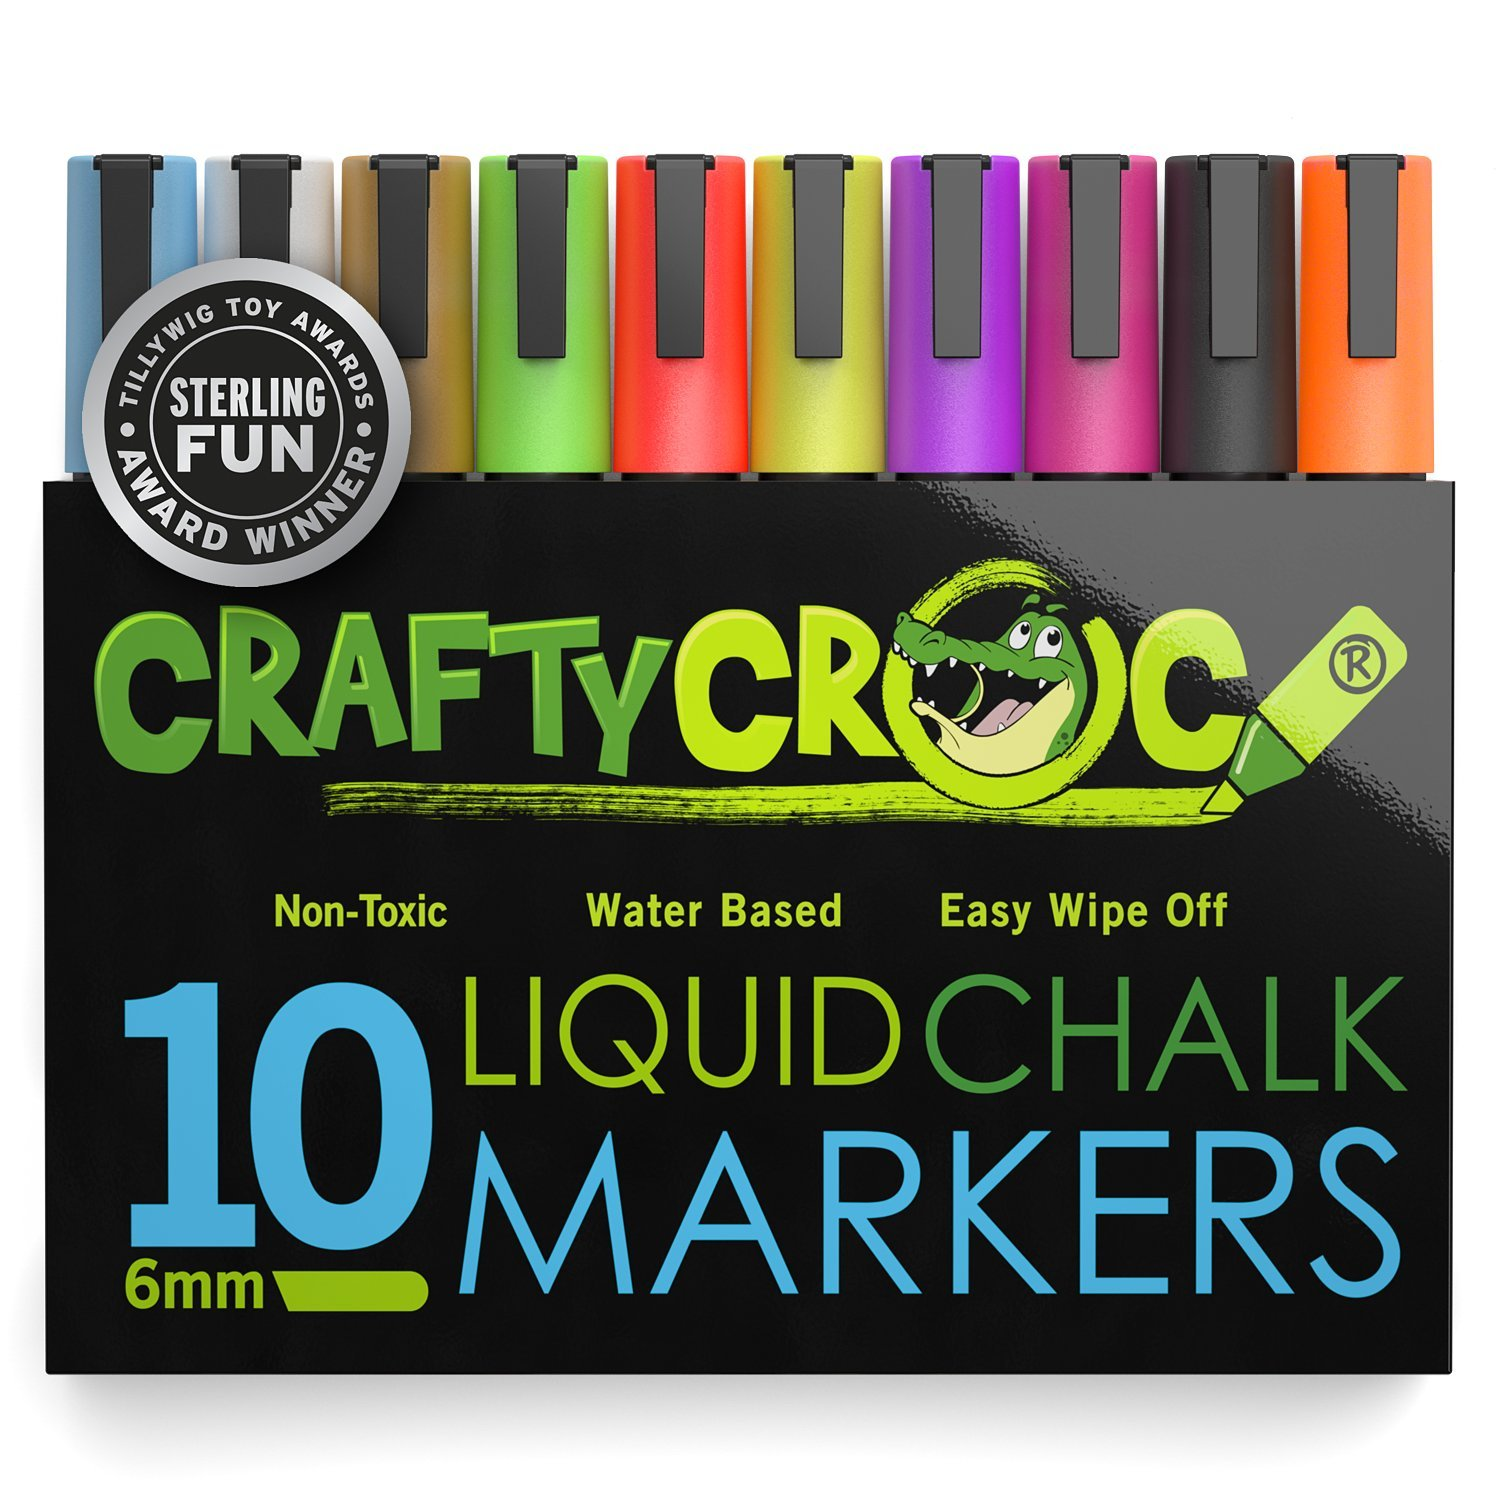 Crafty Croc Liquid Chalk Markers, 10 Pack of Neon Chalk Pens, For Nonporous Chalkboards, Bistro Boards, Glass and Windows by Crafty Croc